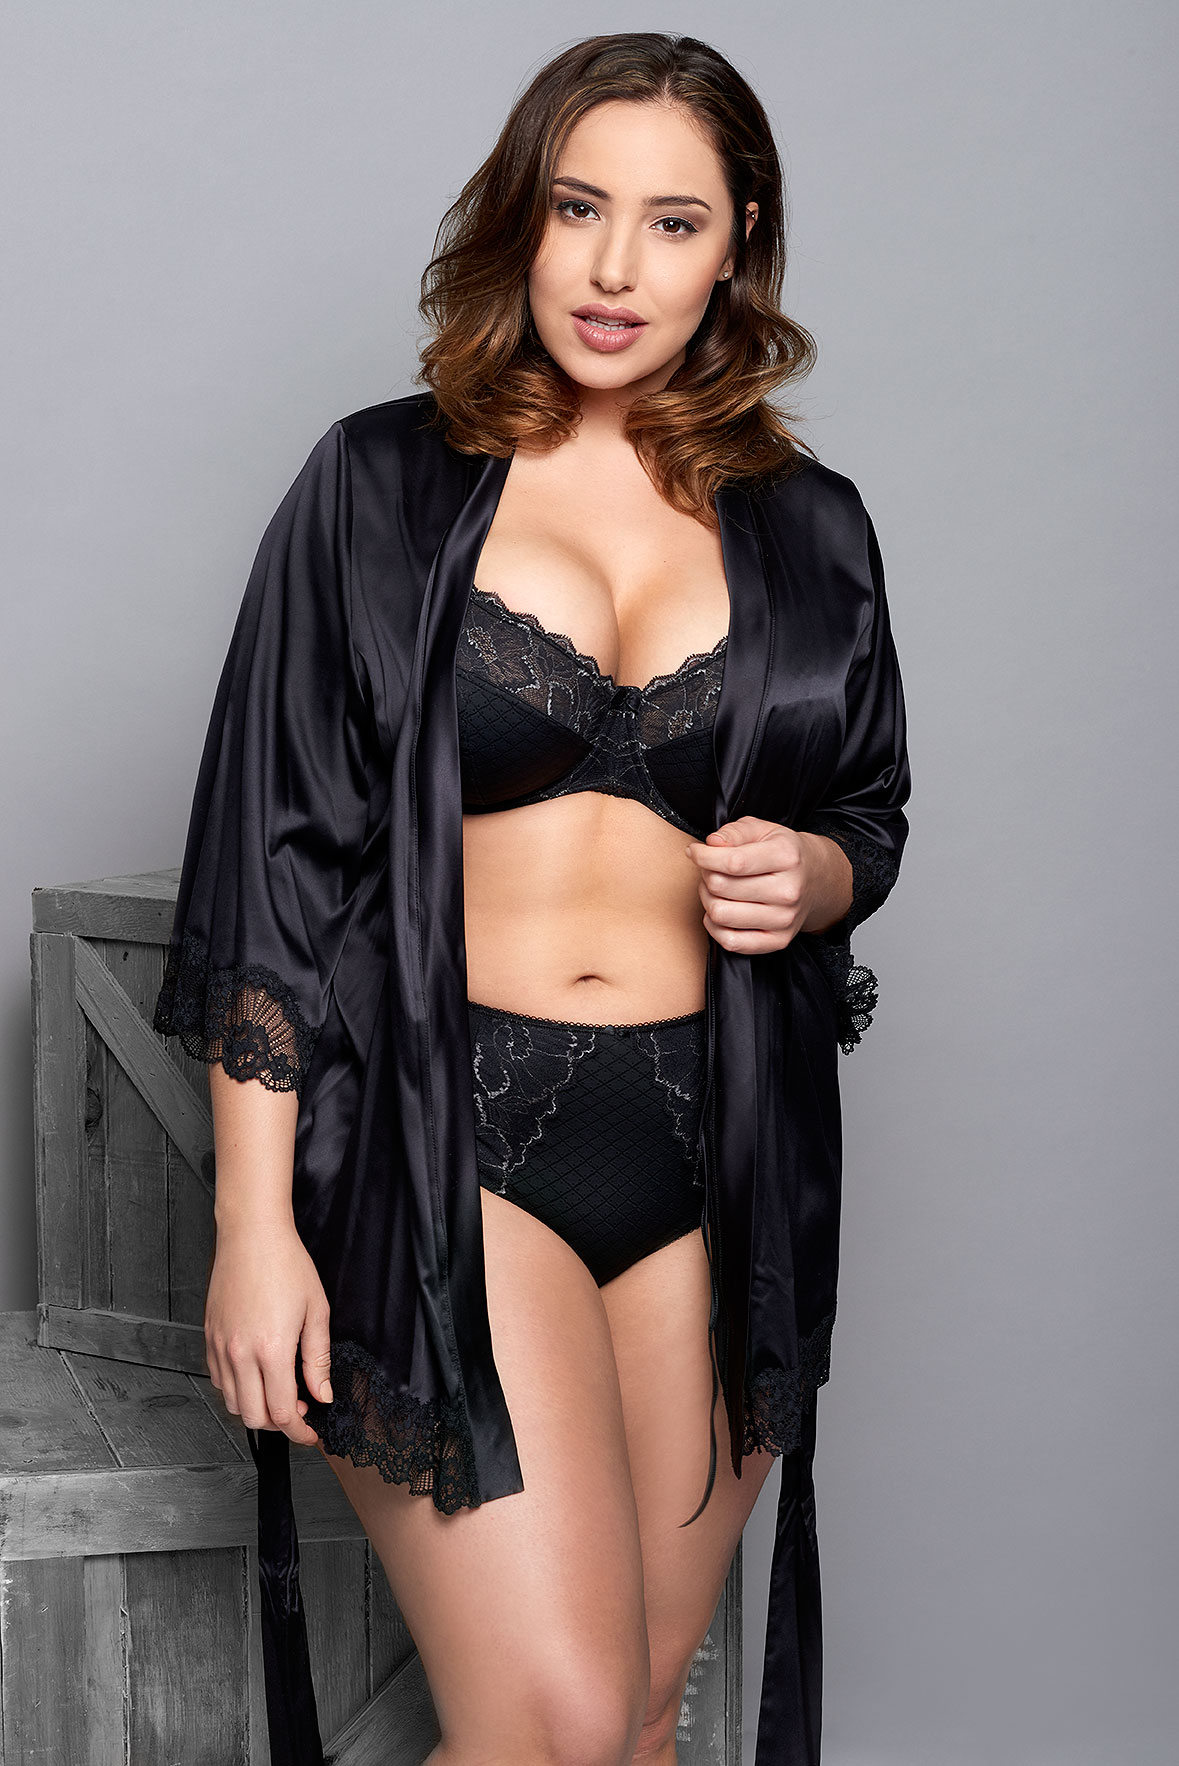 Jada-models-one-1-la-vie-en-lingerie-lingerie-la-femme-plus-size-model-black-robe-06